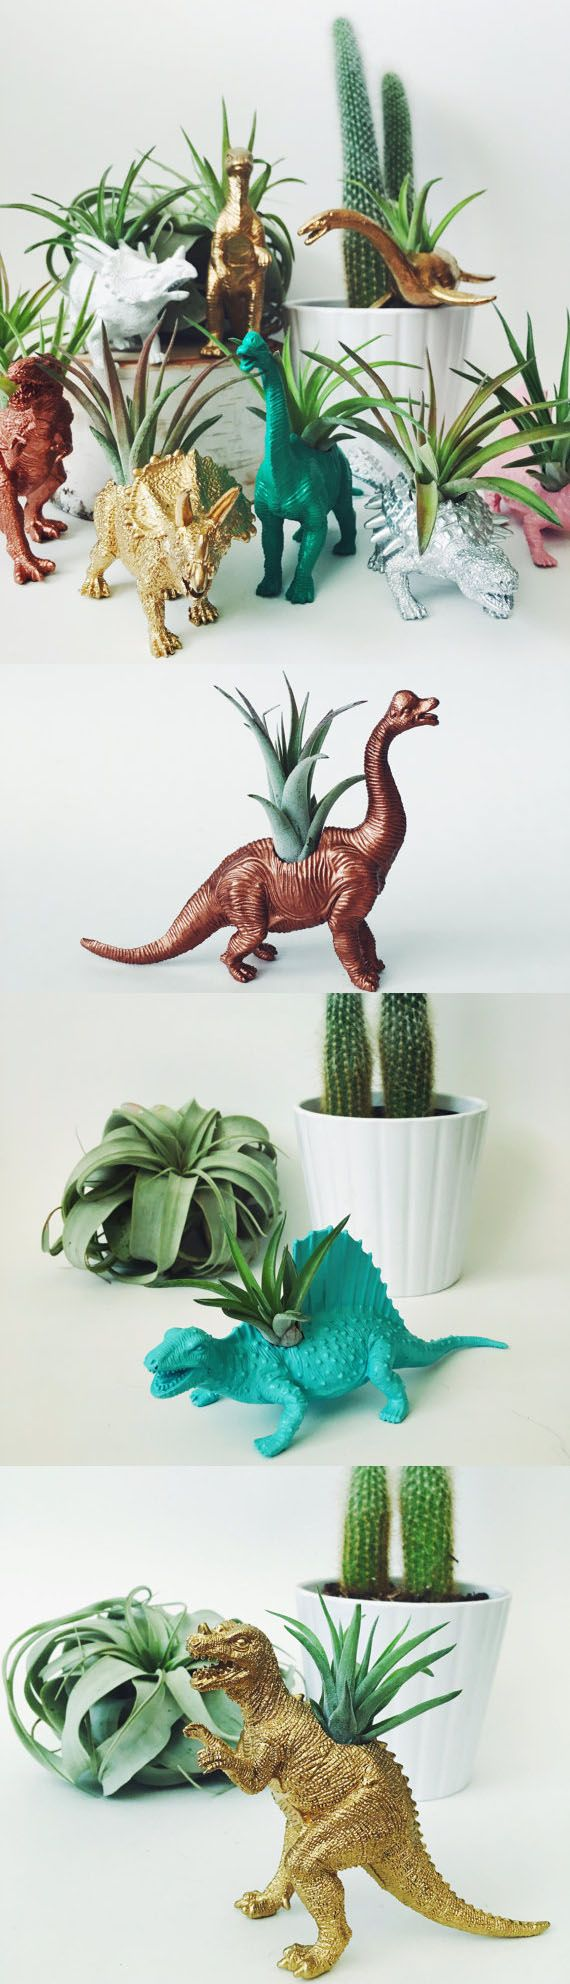 Custom Dinosaur Air Planter // Home decor gardening dinos